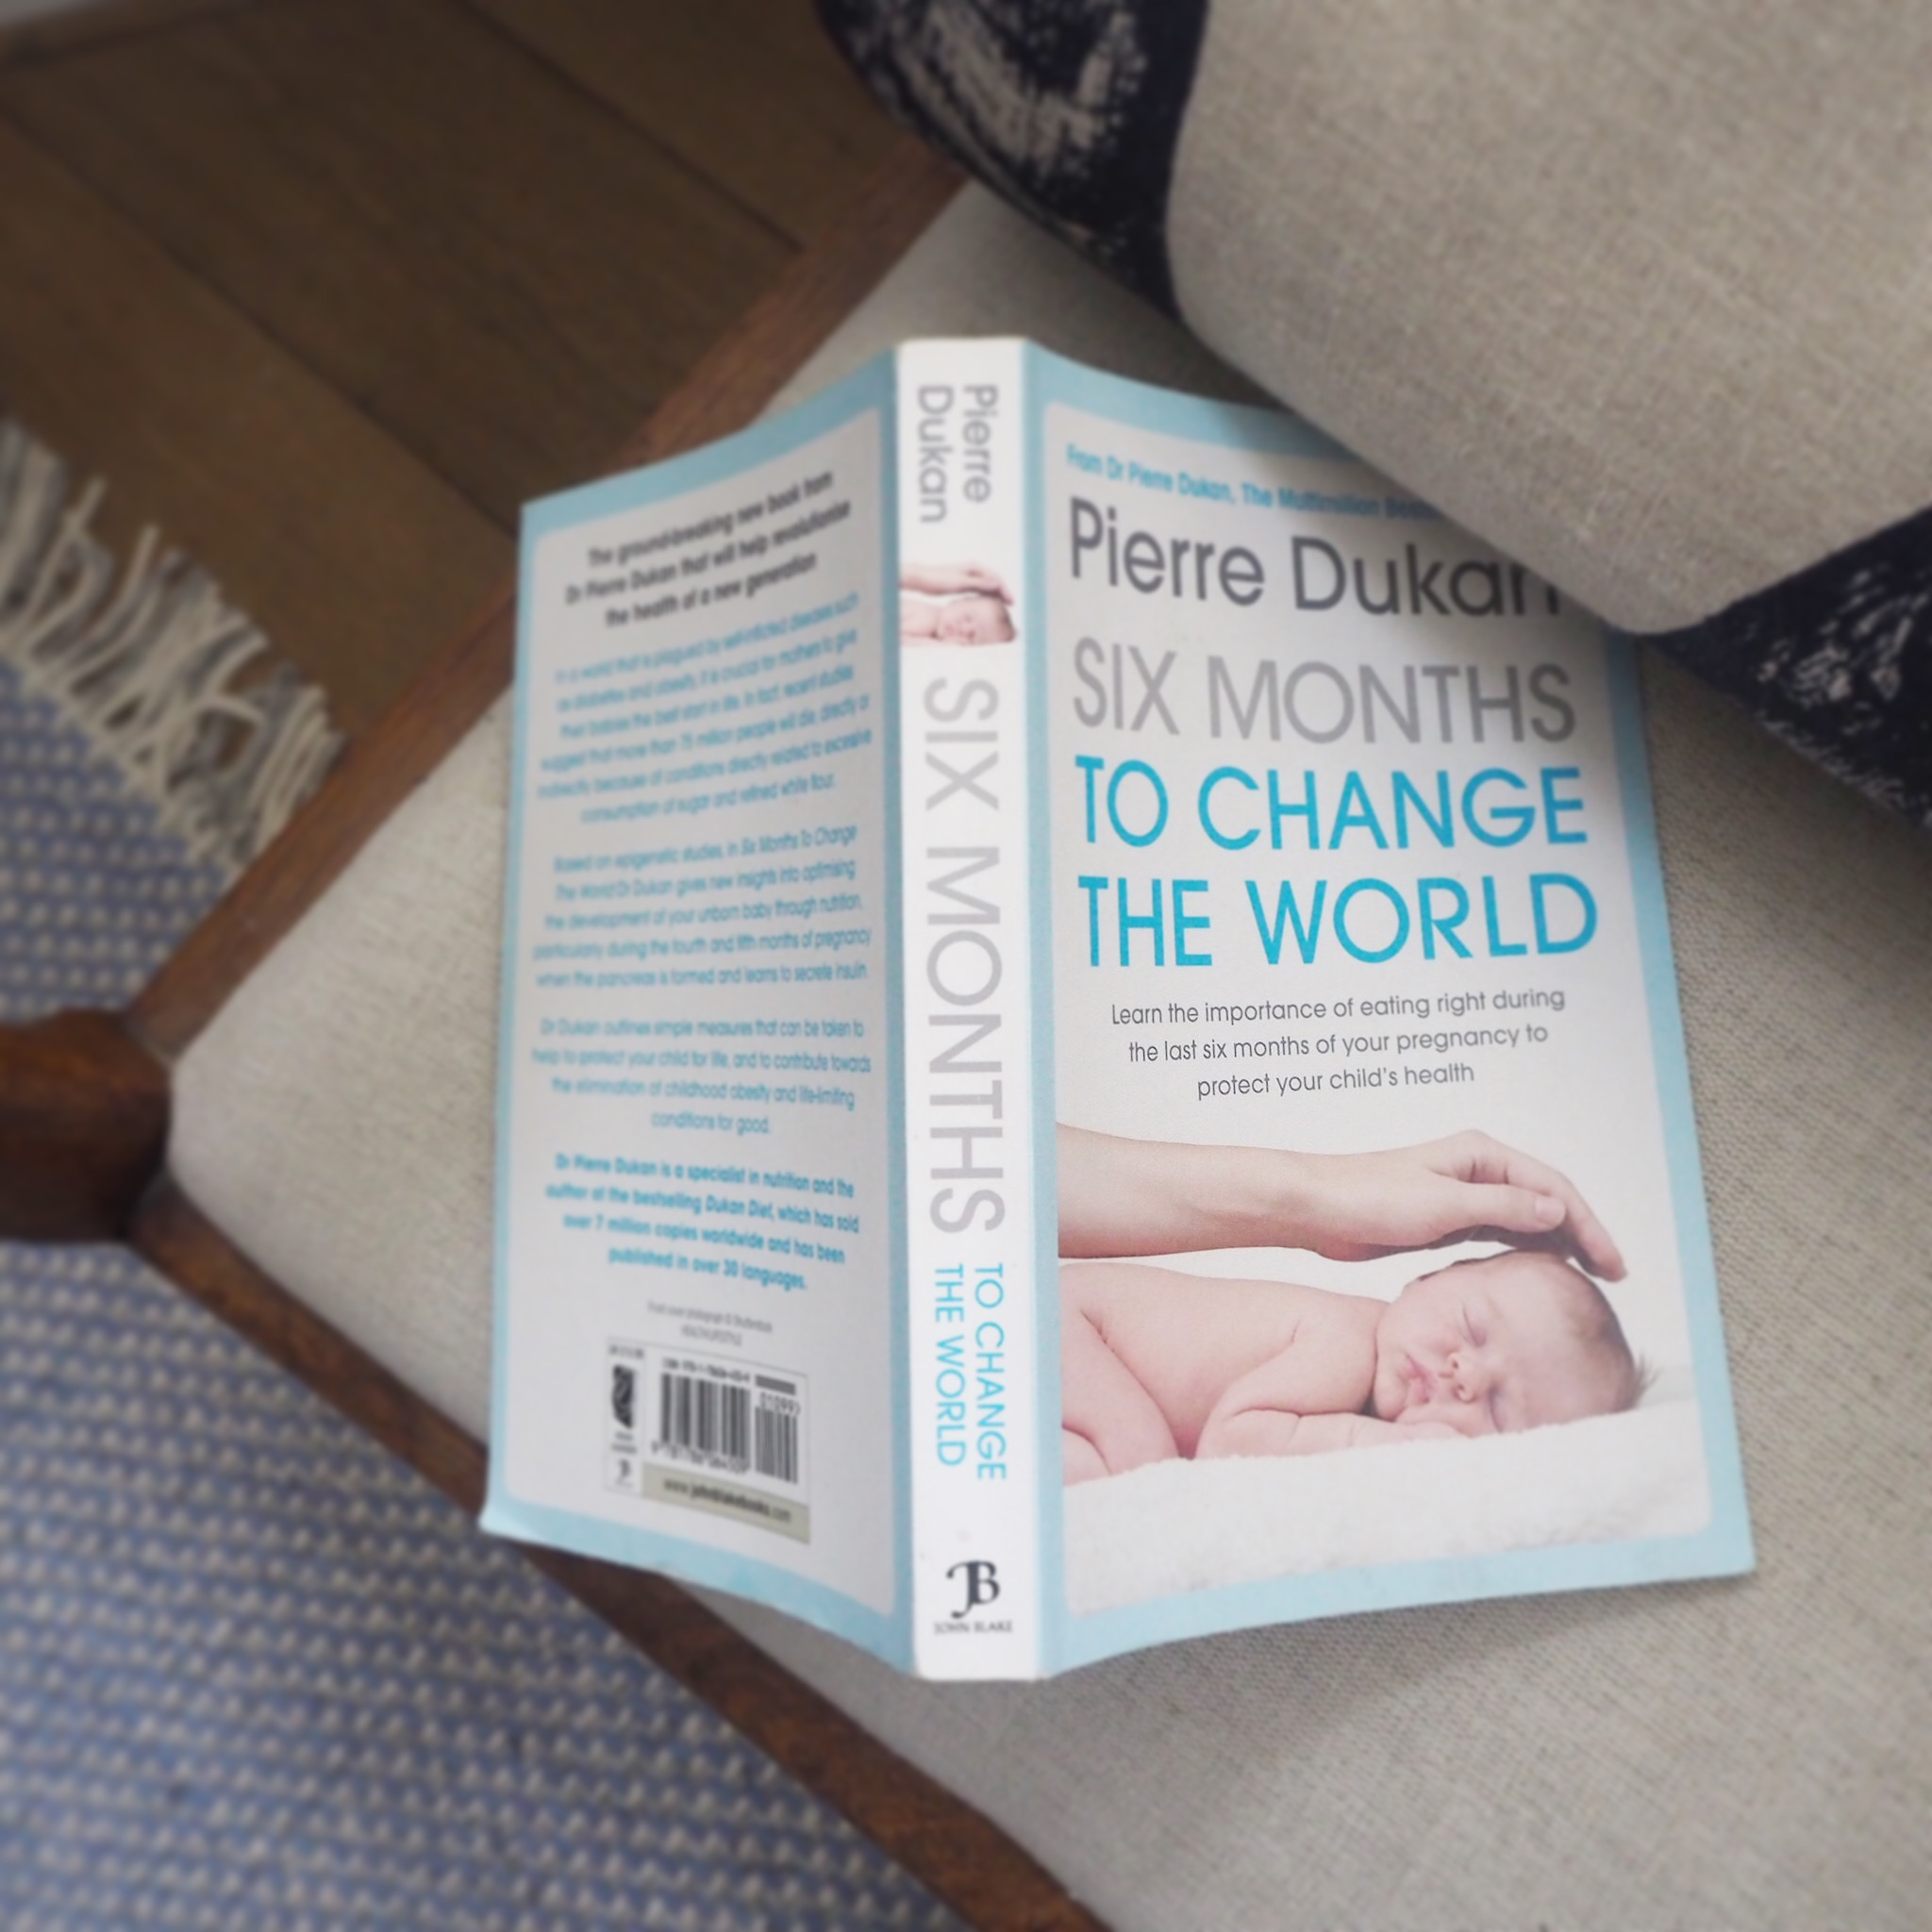 Book review of Six Months To Change The World by Dr Pierre Dukan